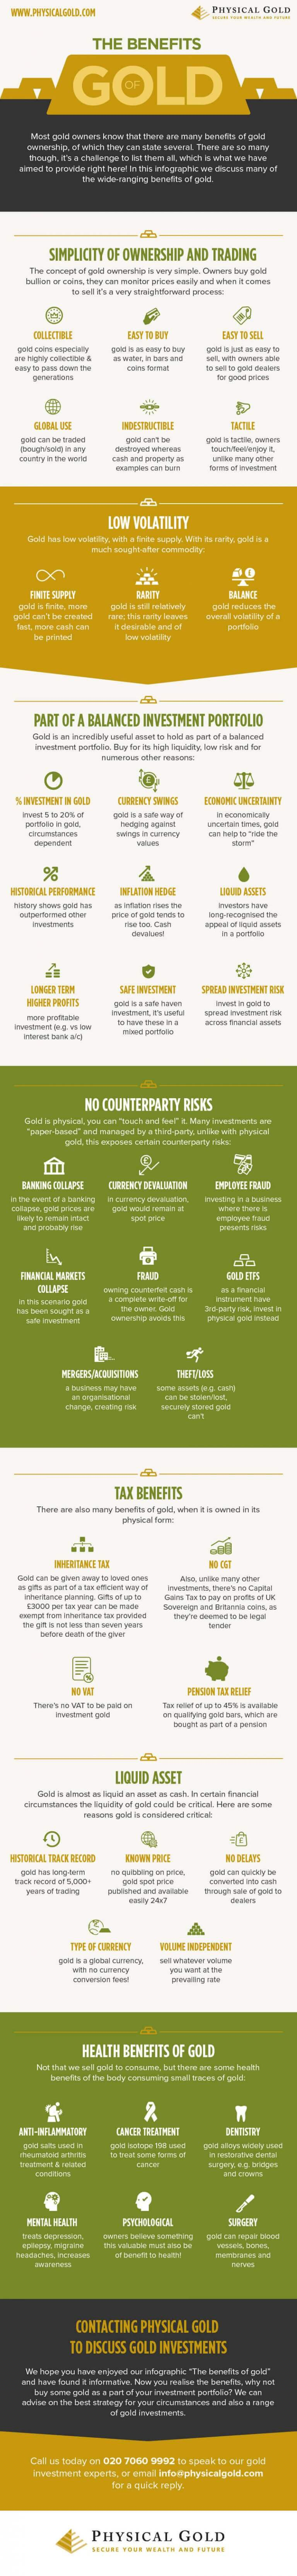 Benefits of Gold Infographic